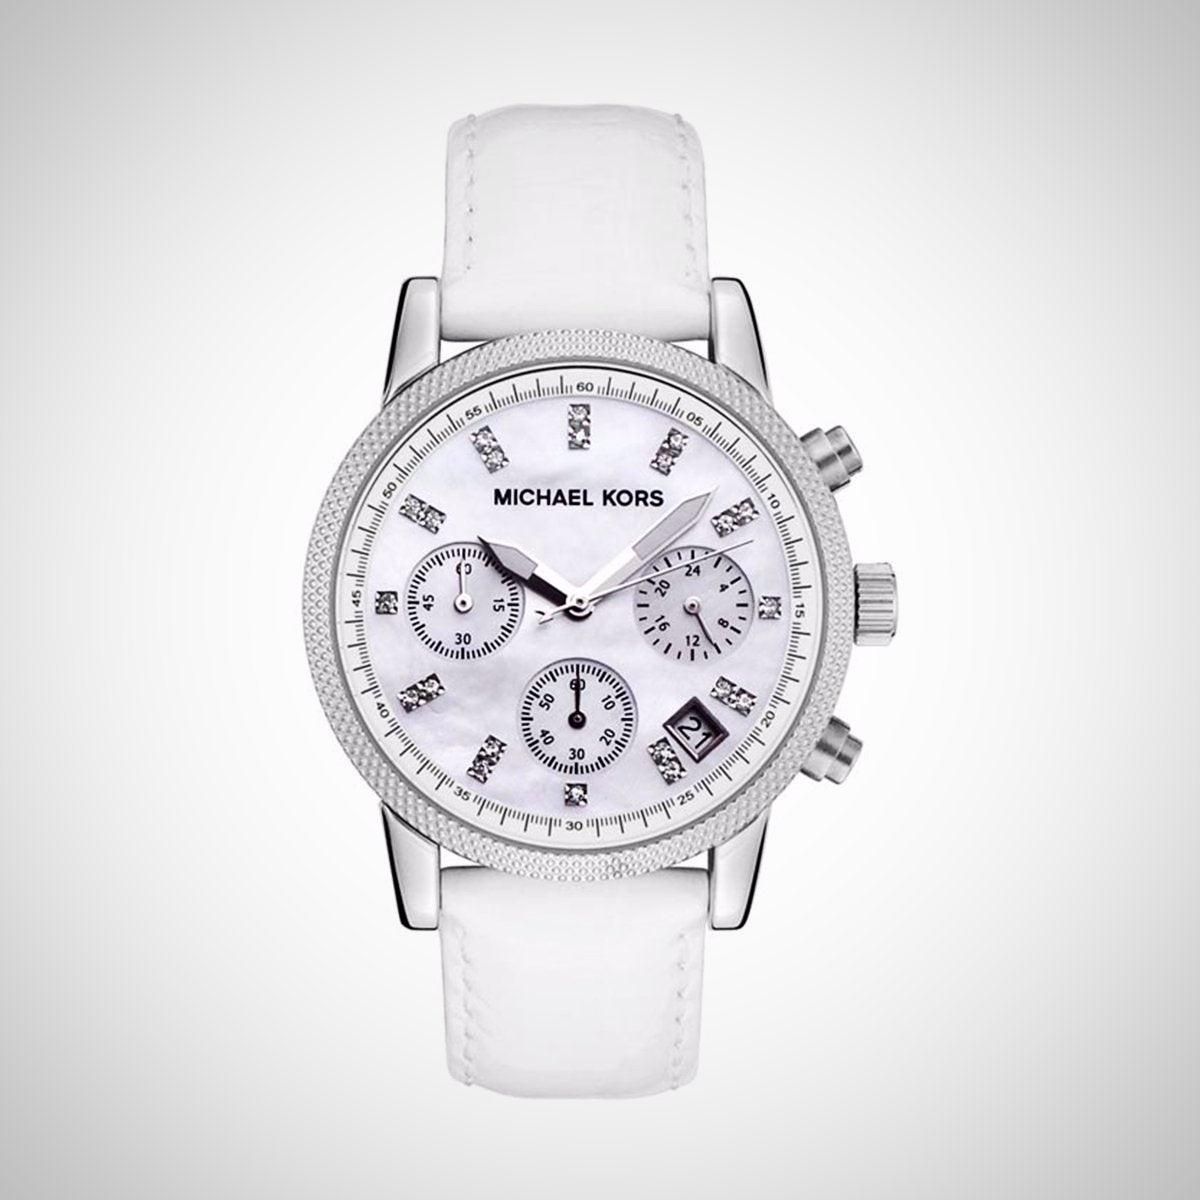 Michael Kors MK5049 Ladies' Chronograph Watch